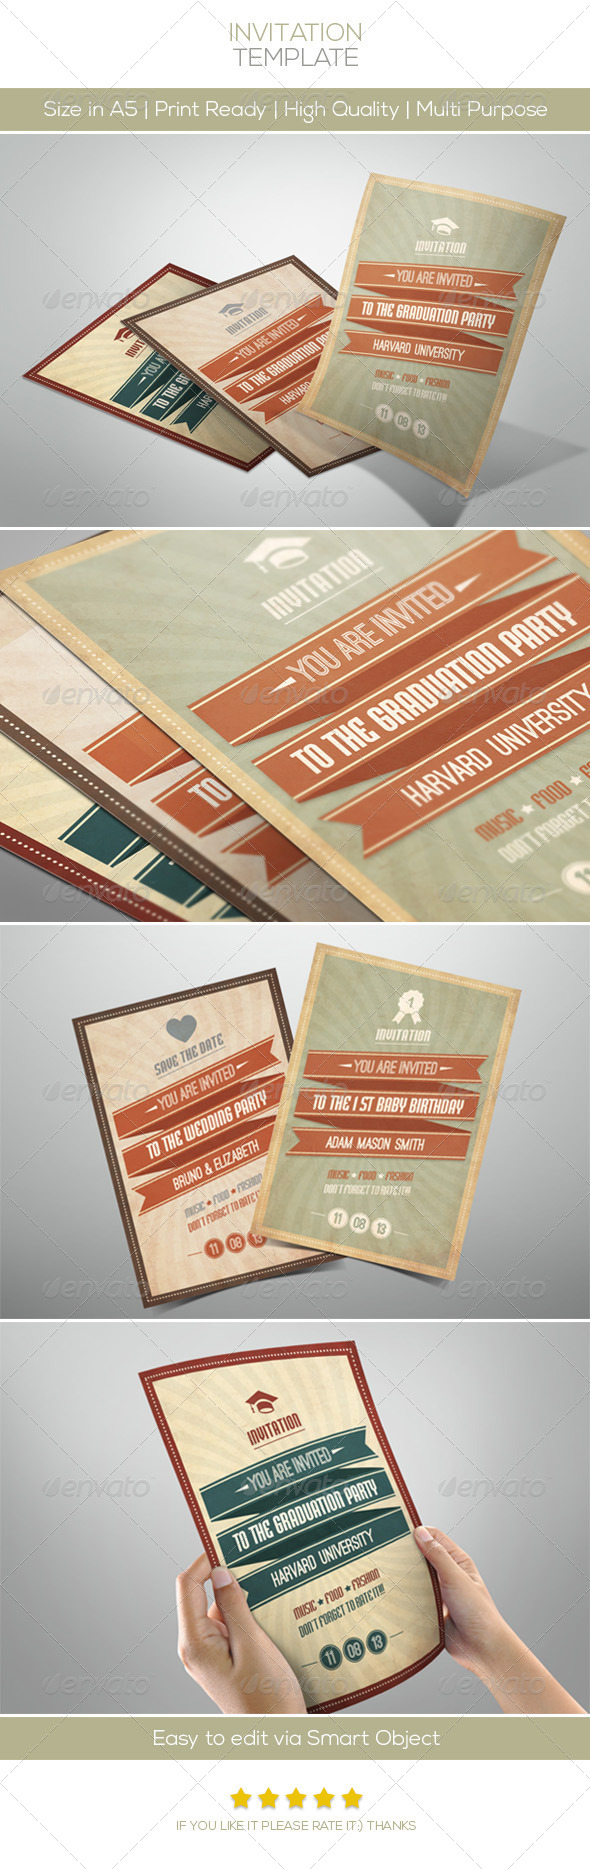 GraphicRiver Retro Invitation 4603072